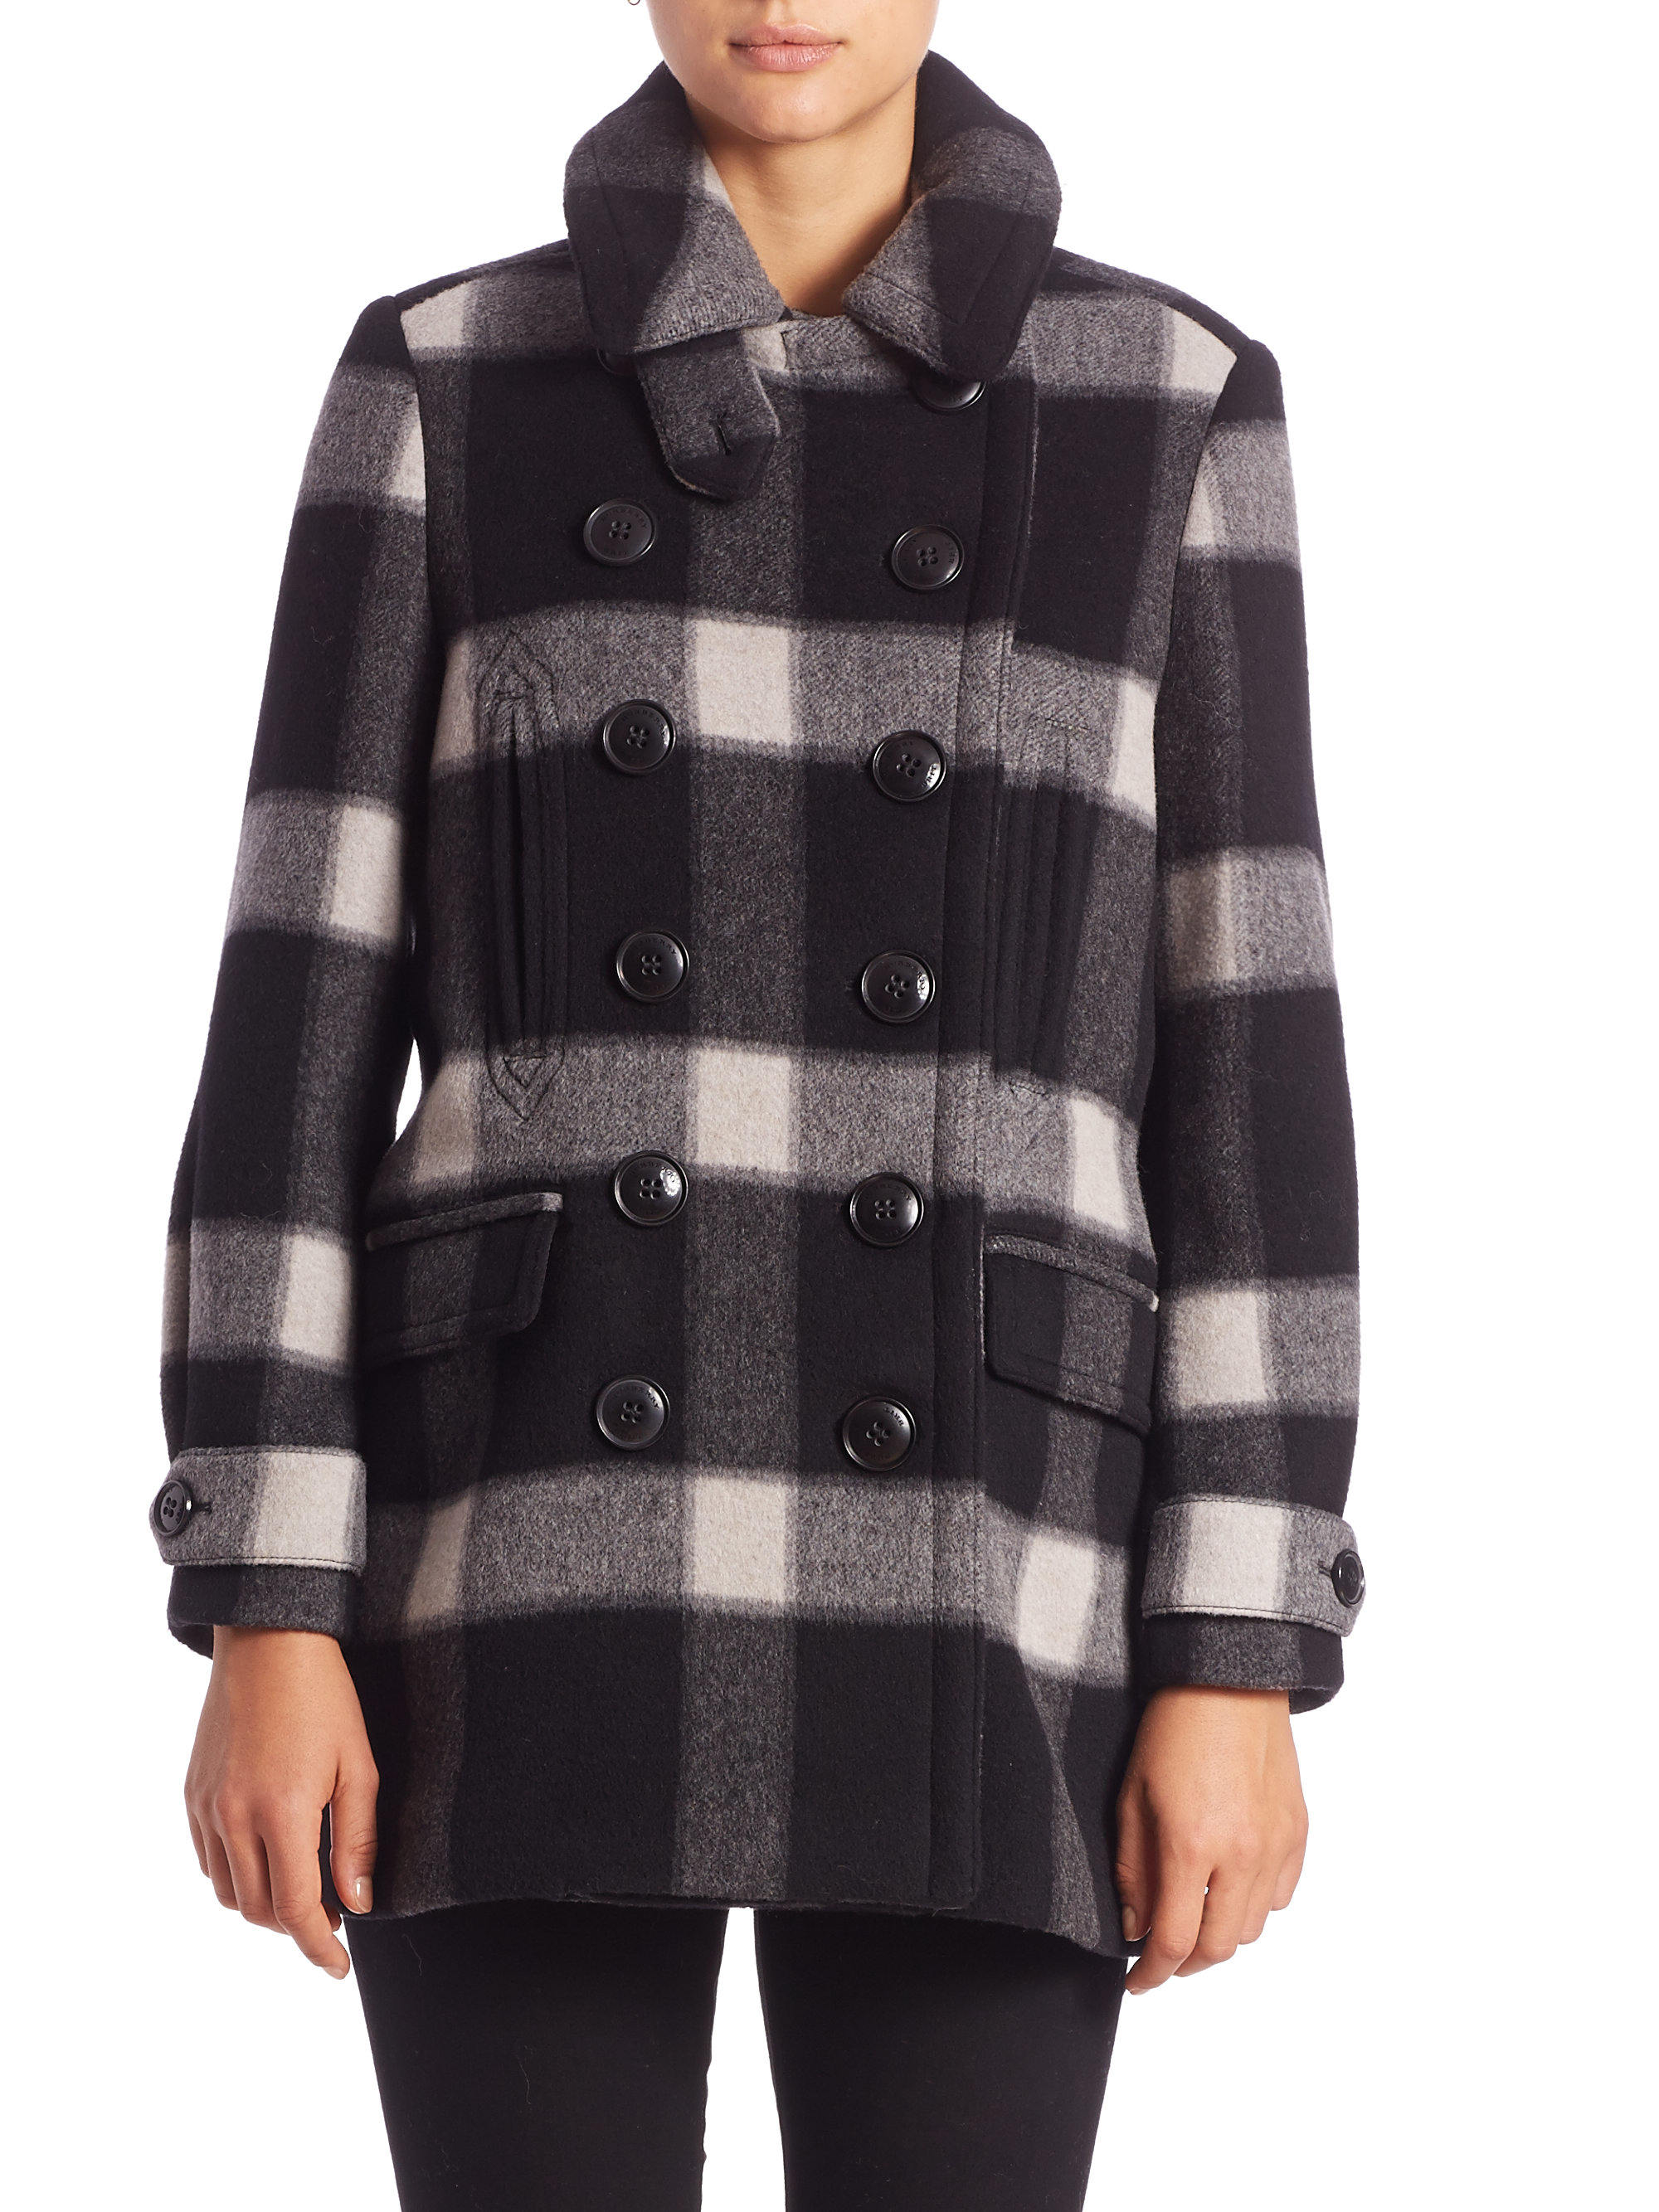 Burberry brit weltford plaid peacoat in black lyst for Burberry brit green plaid shirt